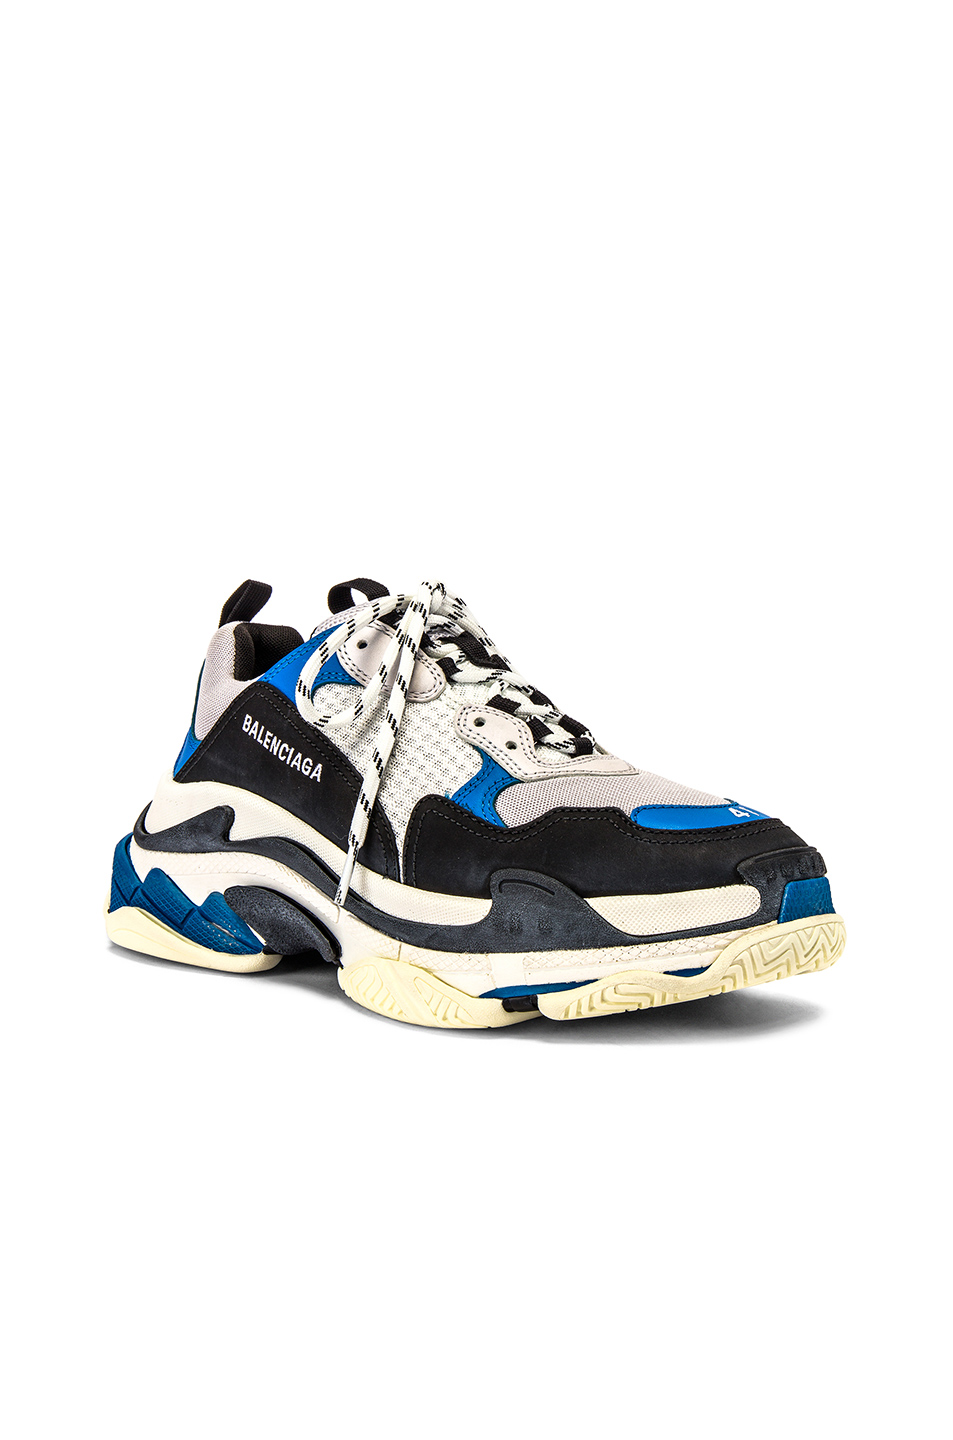 fast delivery factory authentic various styles Triple S Sneaker, Balenciaga